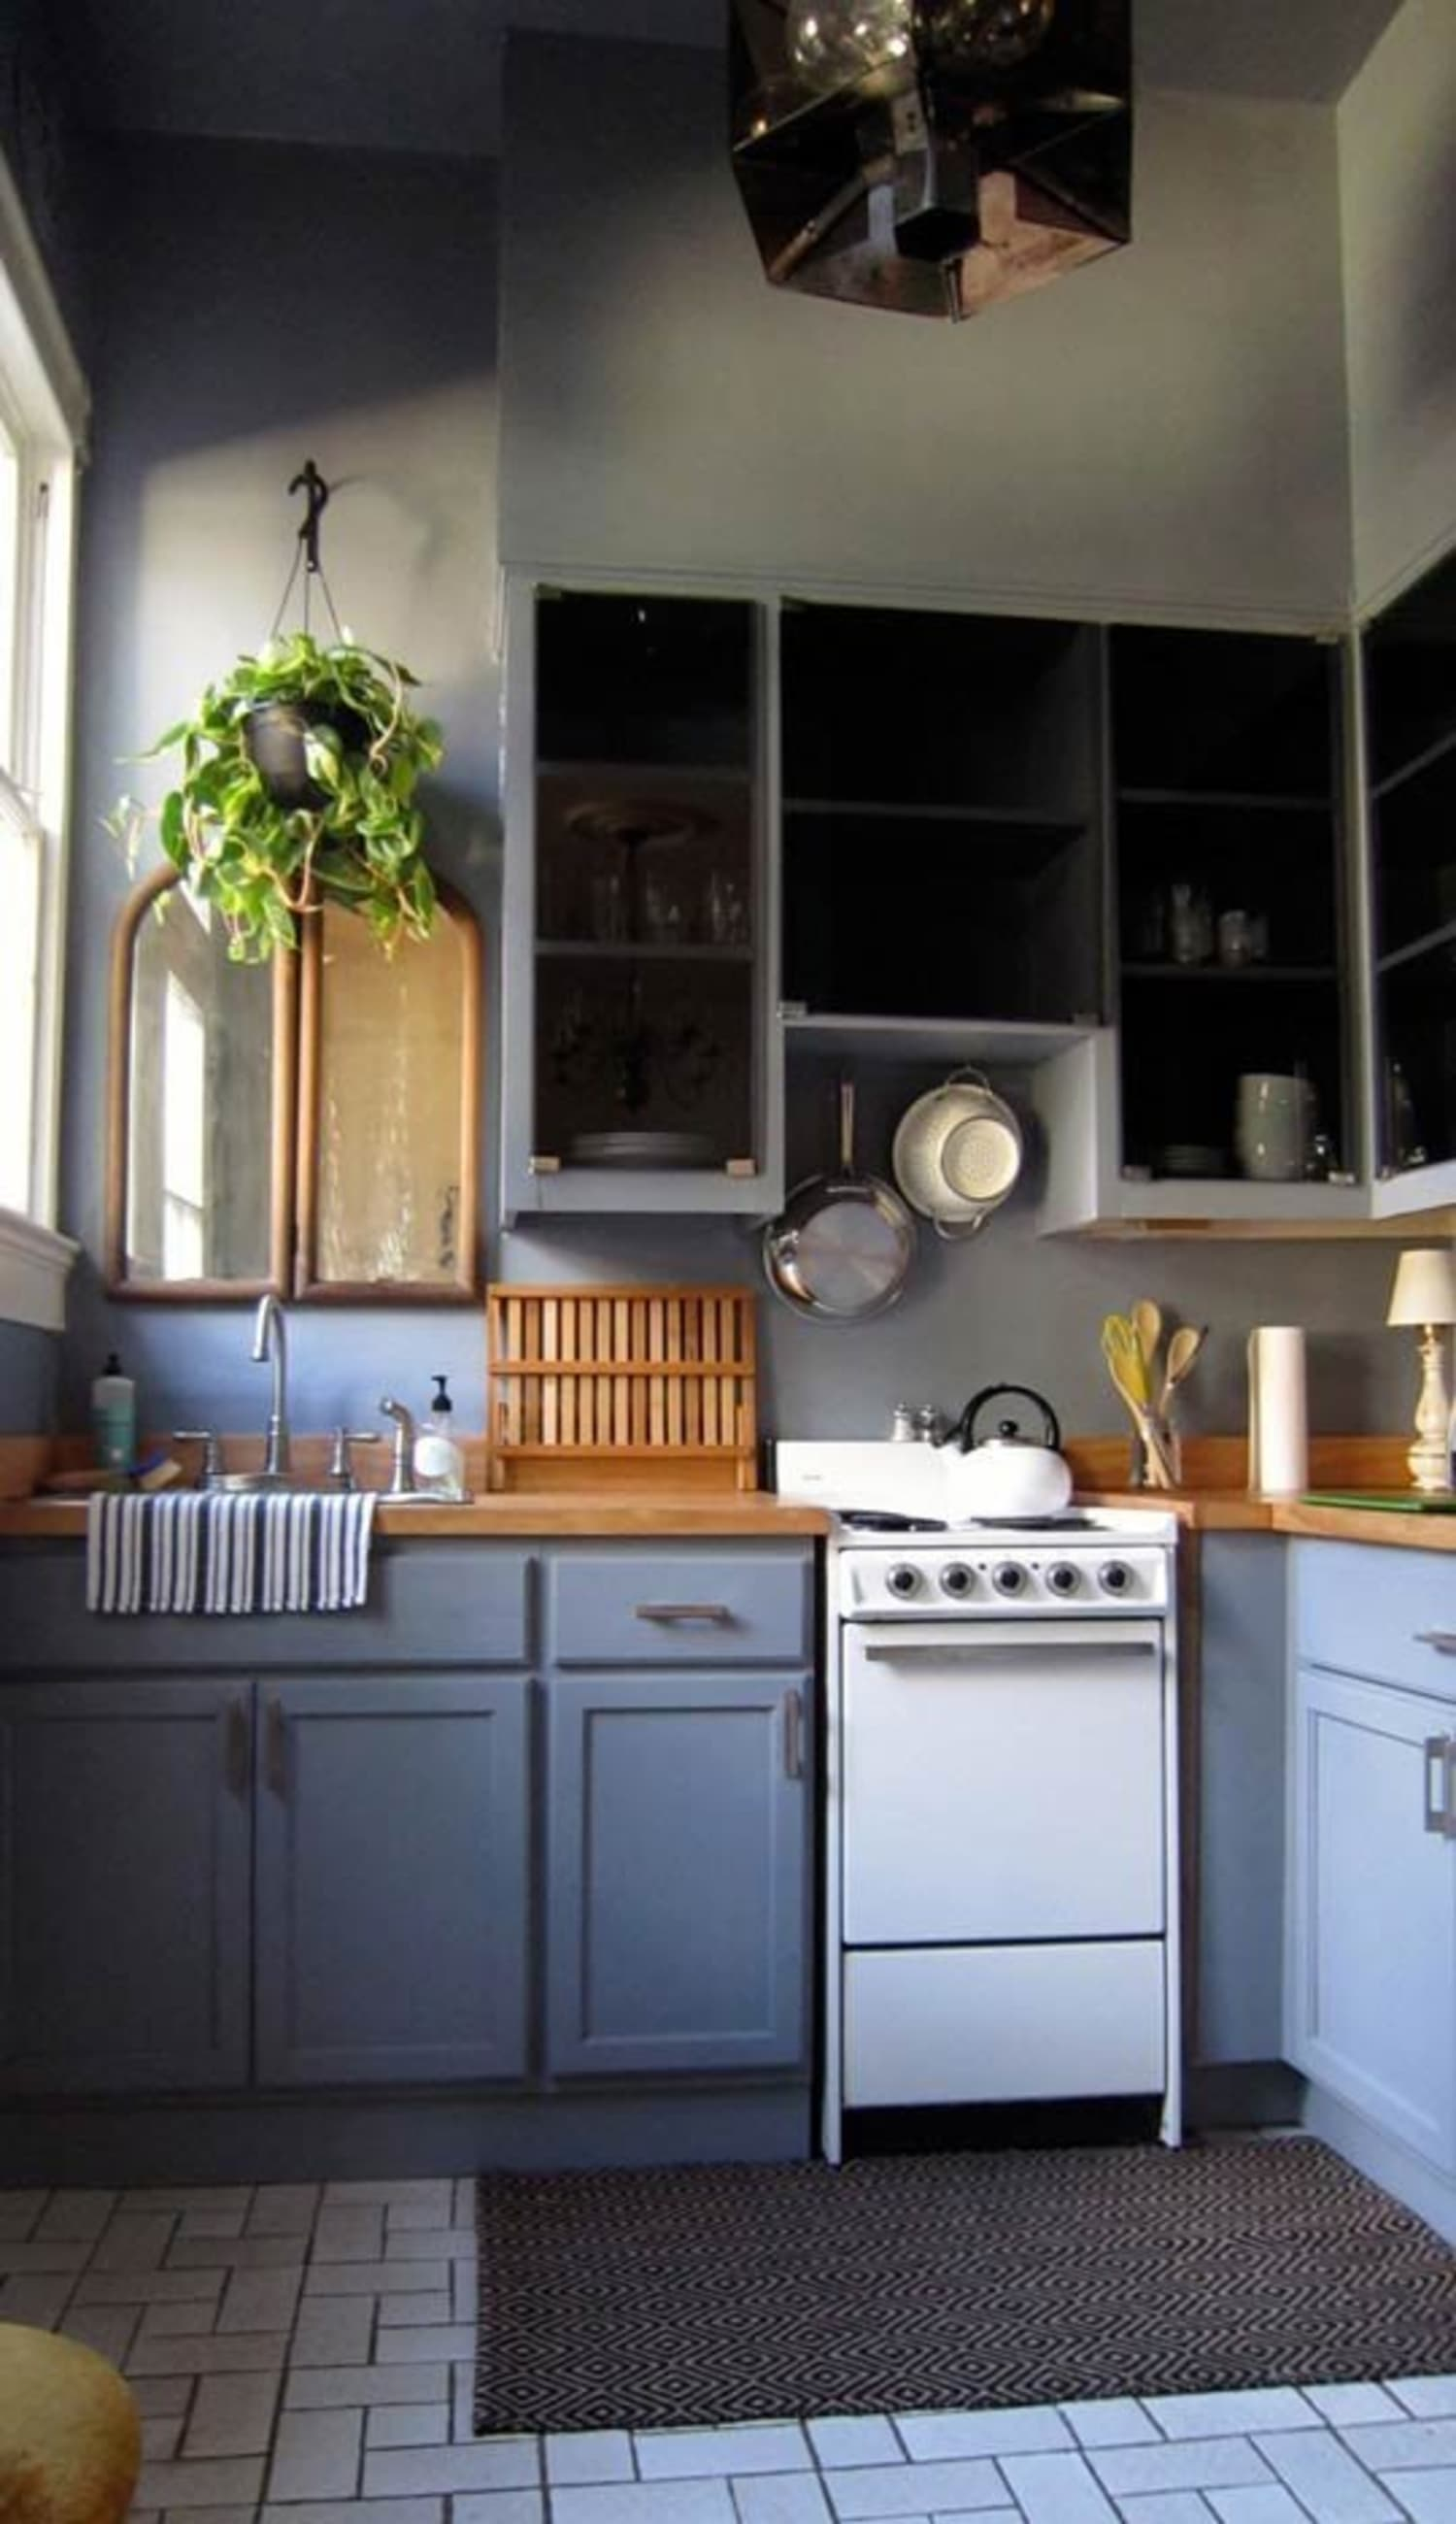 What Is A Kitchen Soffit And Can I Remove It: 10 Ways To Disguise A Kitchen Soffit